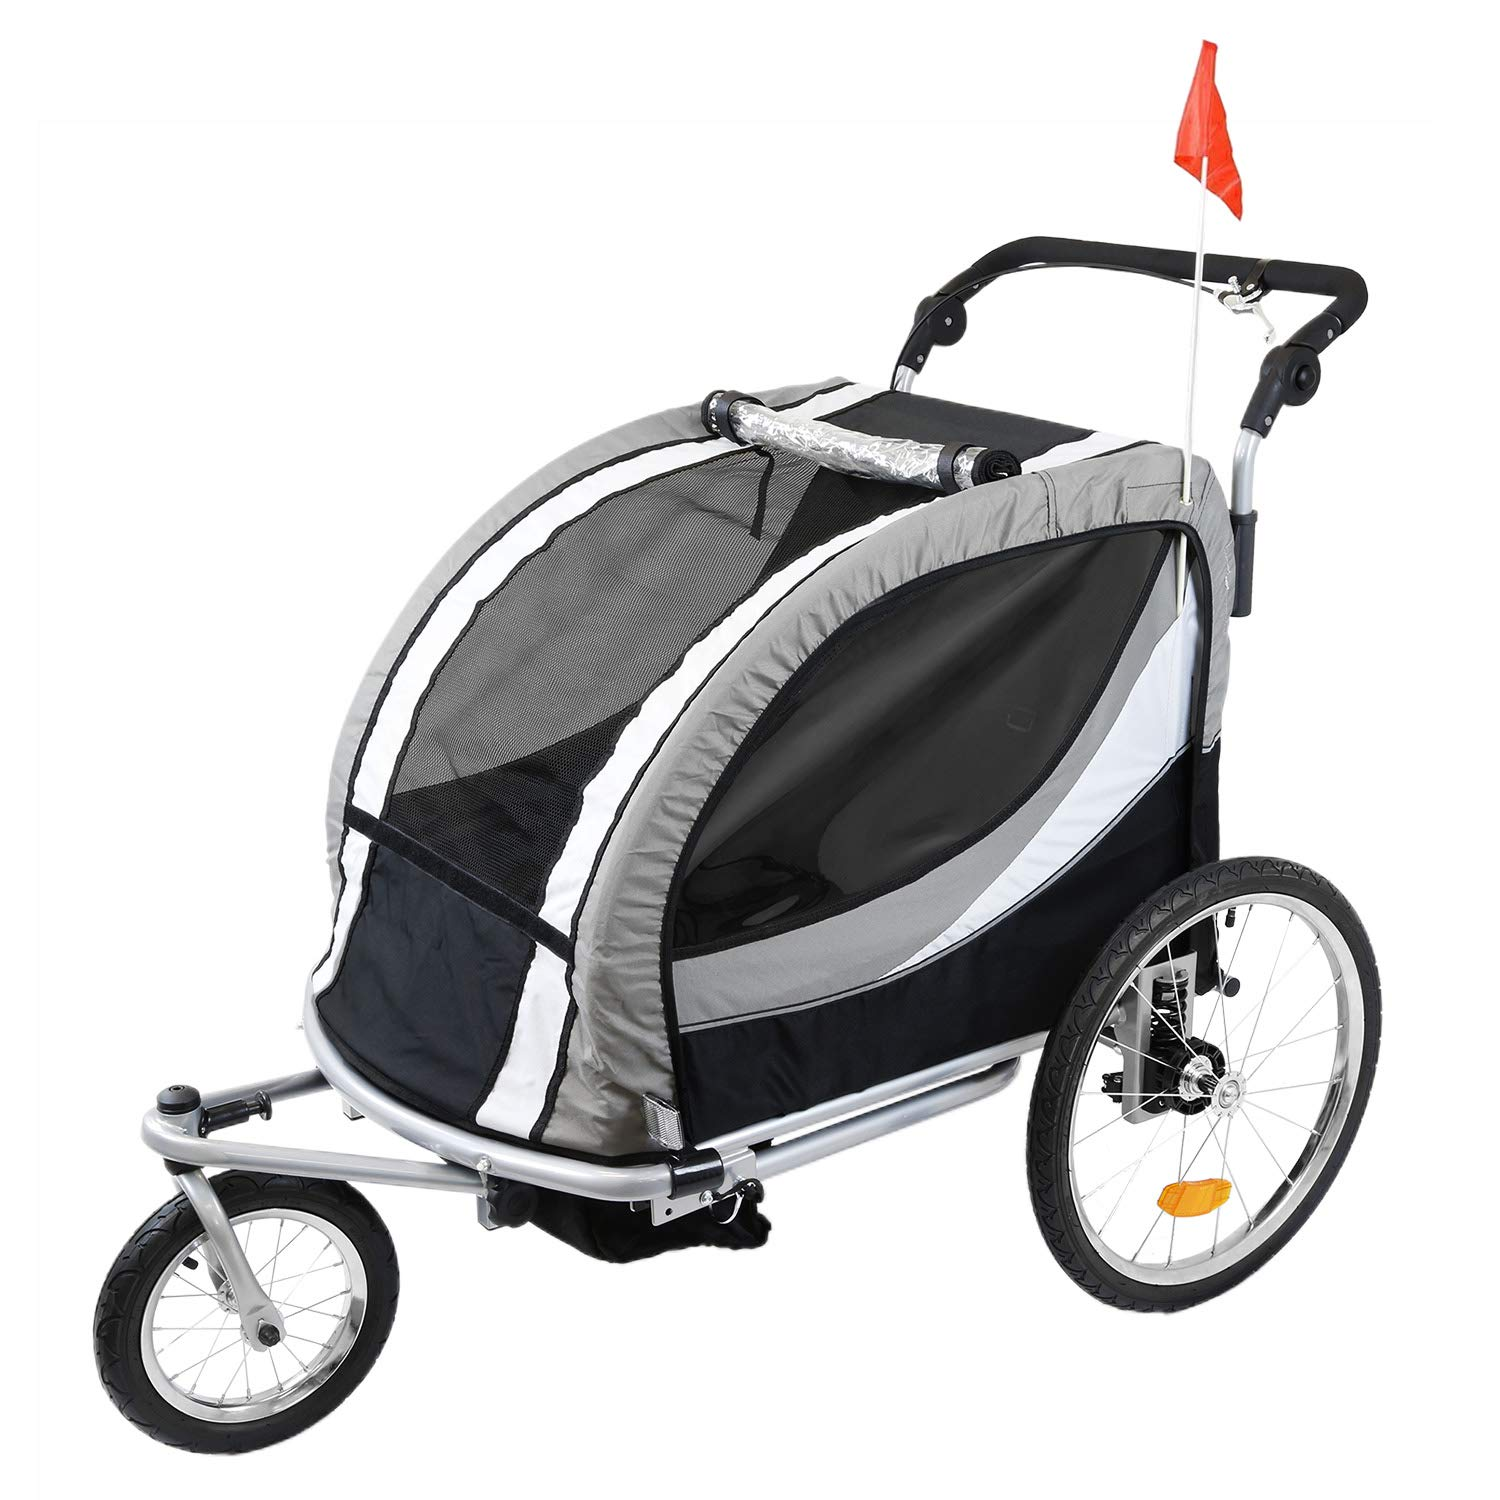 Clevr 3-in-1 Collapsible 2 Seat Double Bicycle Trailer Baby Bike Jogger/Stroller Jogging Running Kids Cart | Pivot Front Wheel